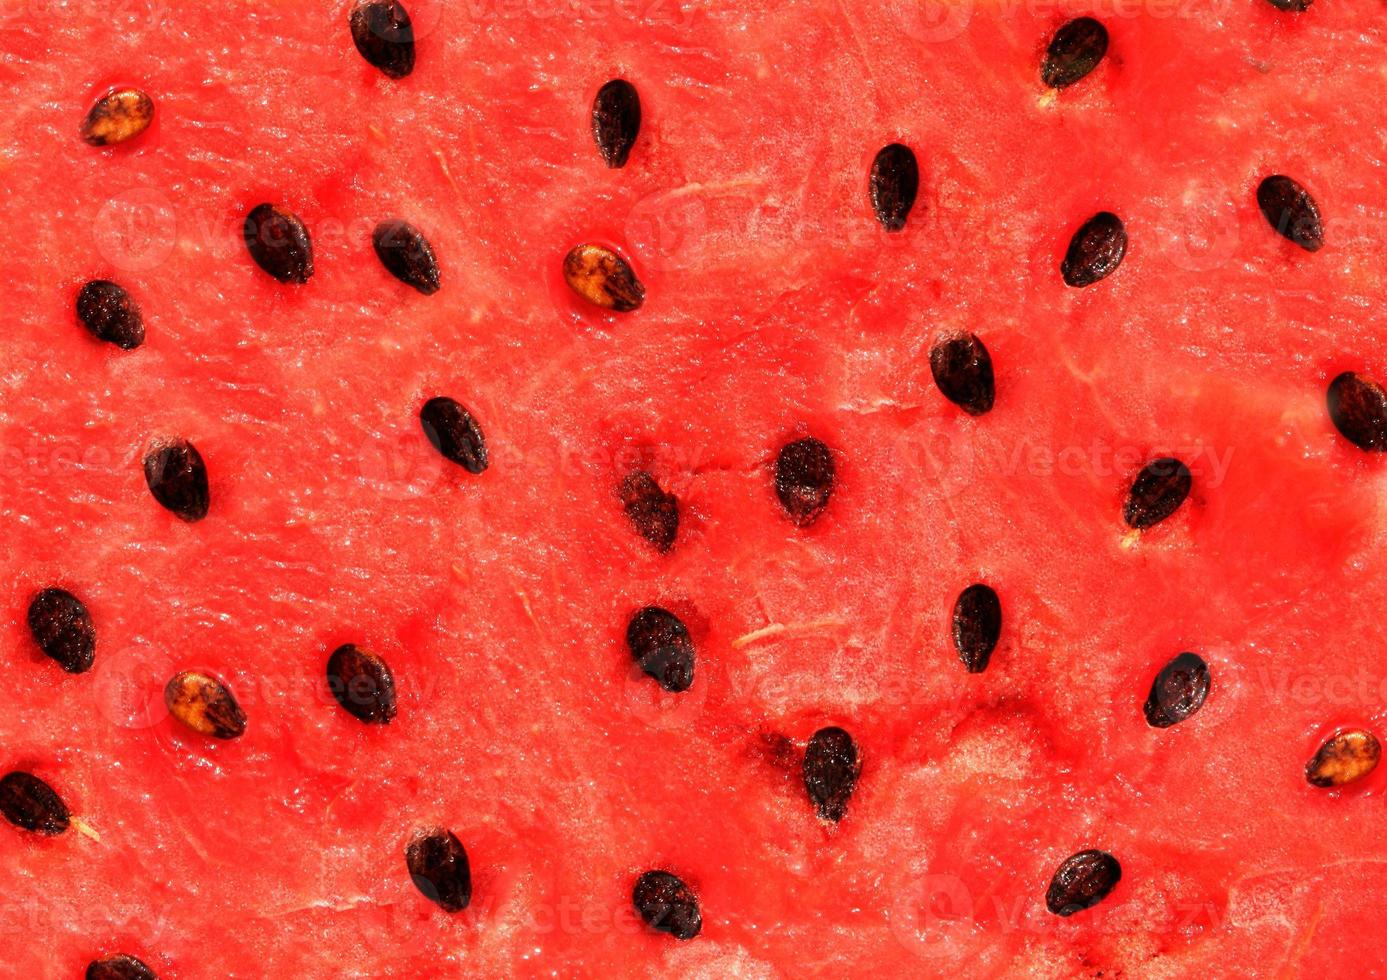 Red texture of watermelon photo